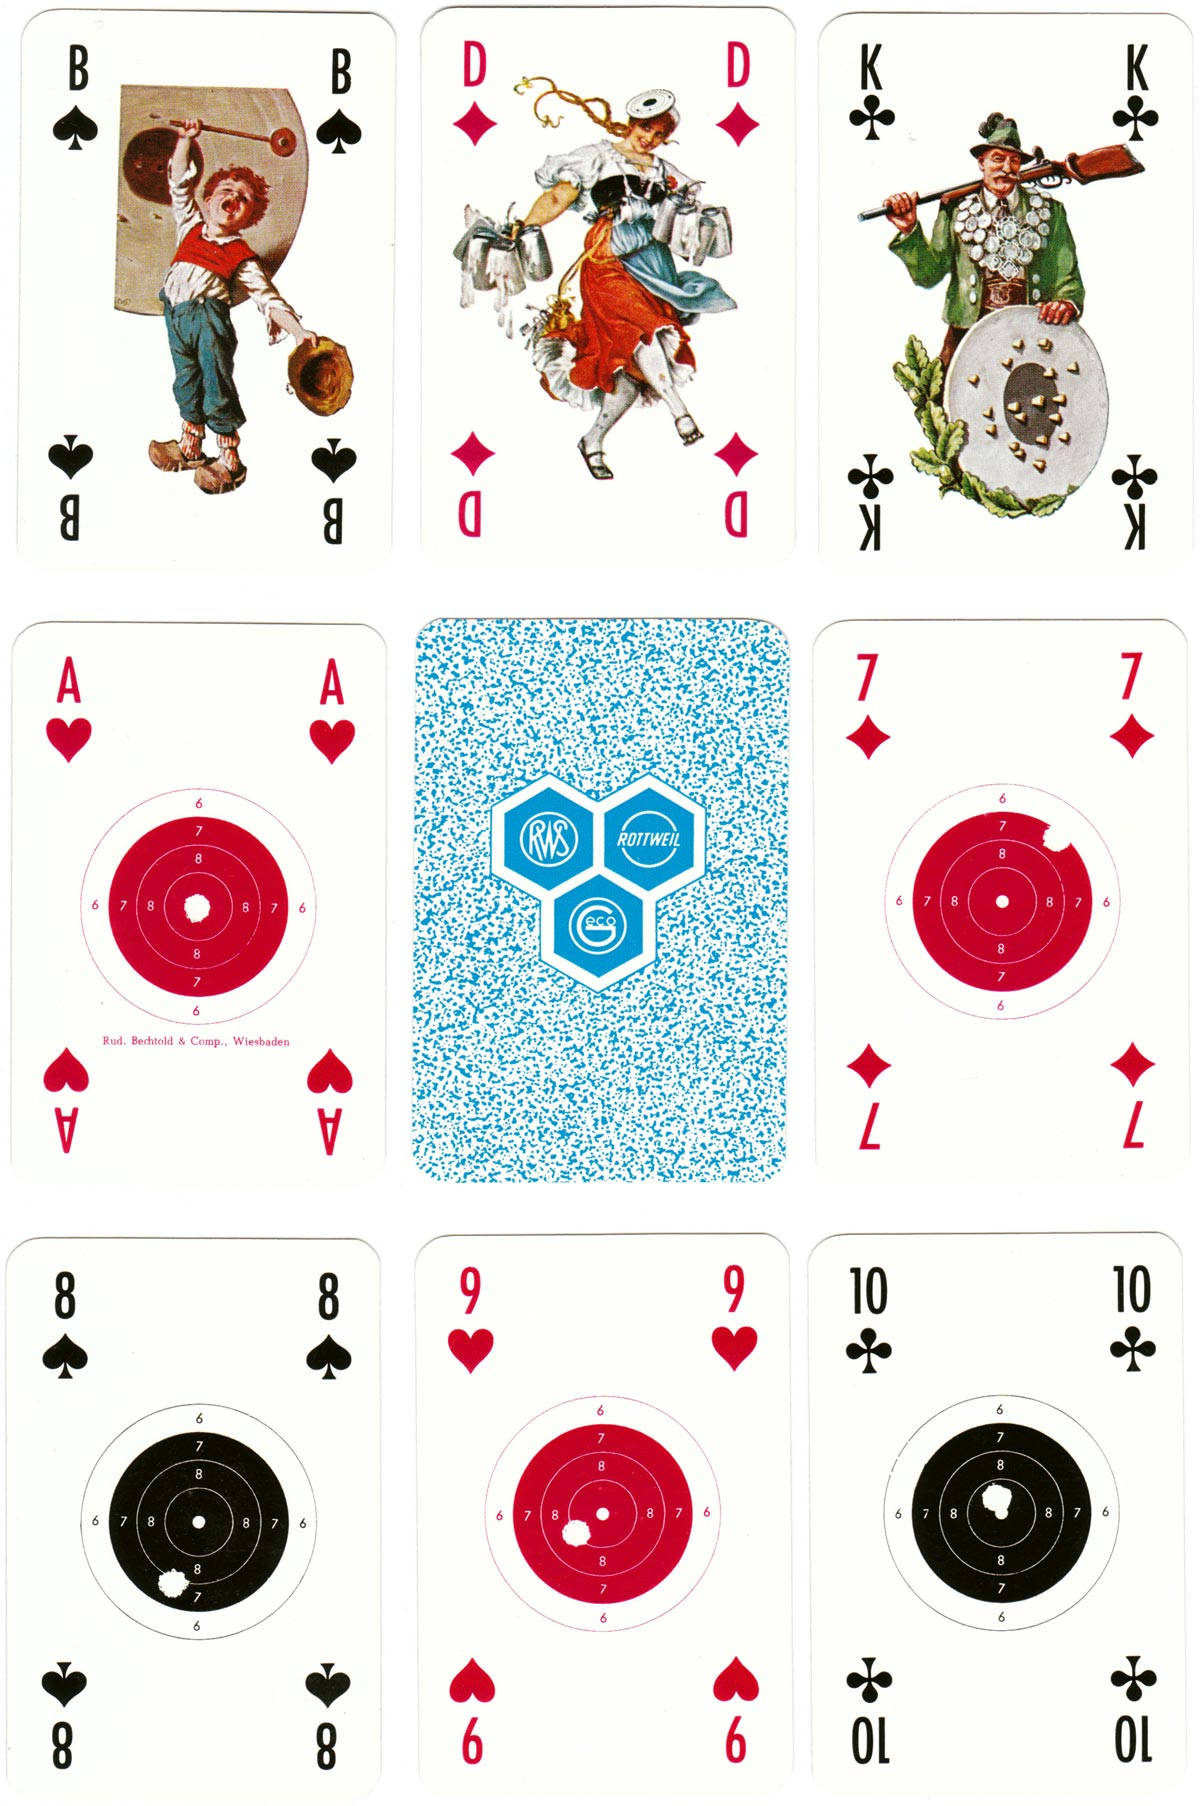 """Spielkarte für Schützen"" deck designed by Karl Heinz Lanz, published by Rudolf Bechtold and Co., c.1966"